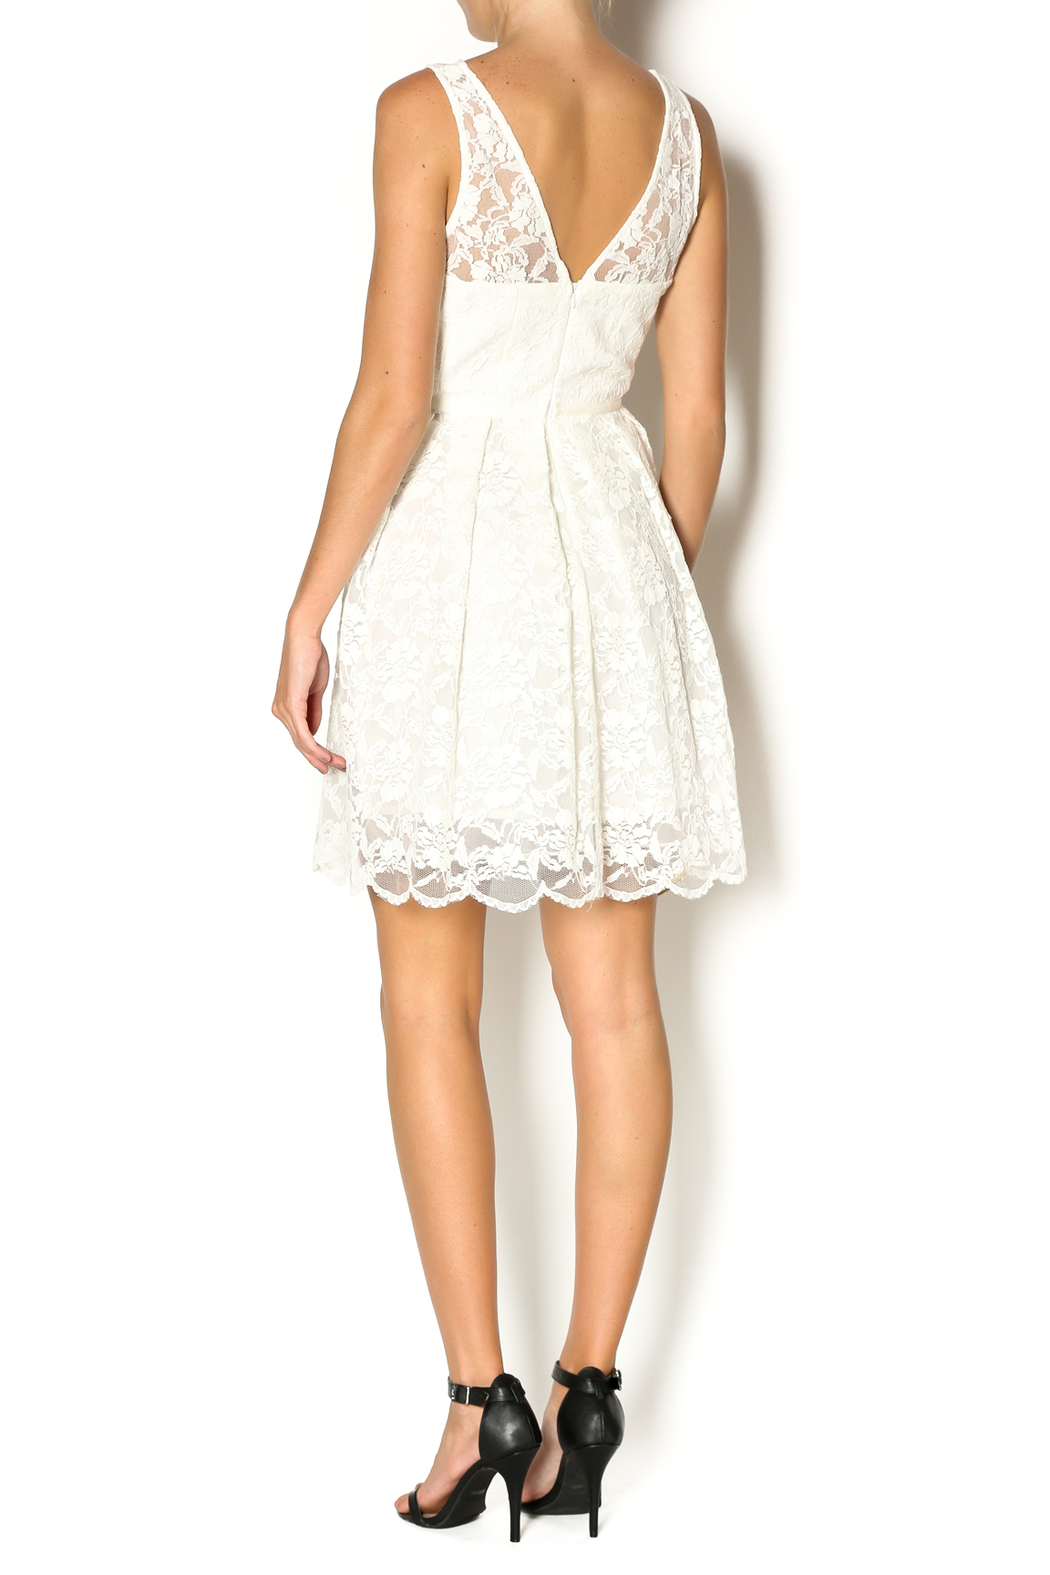 Minuet White Lace Sundress from California by Little Black Dress ...